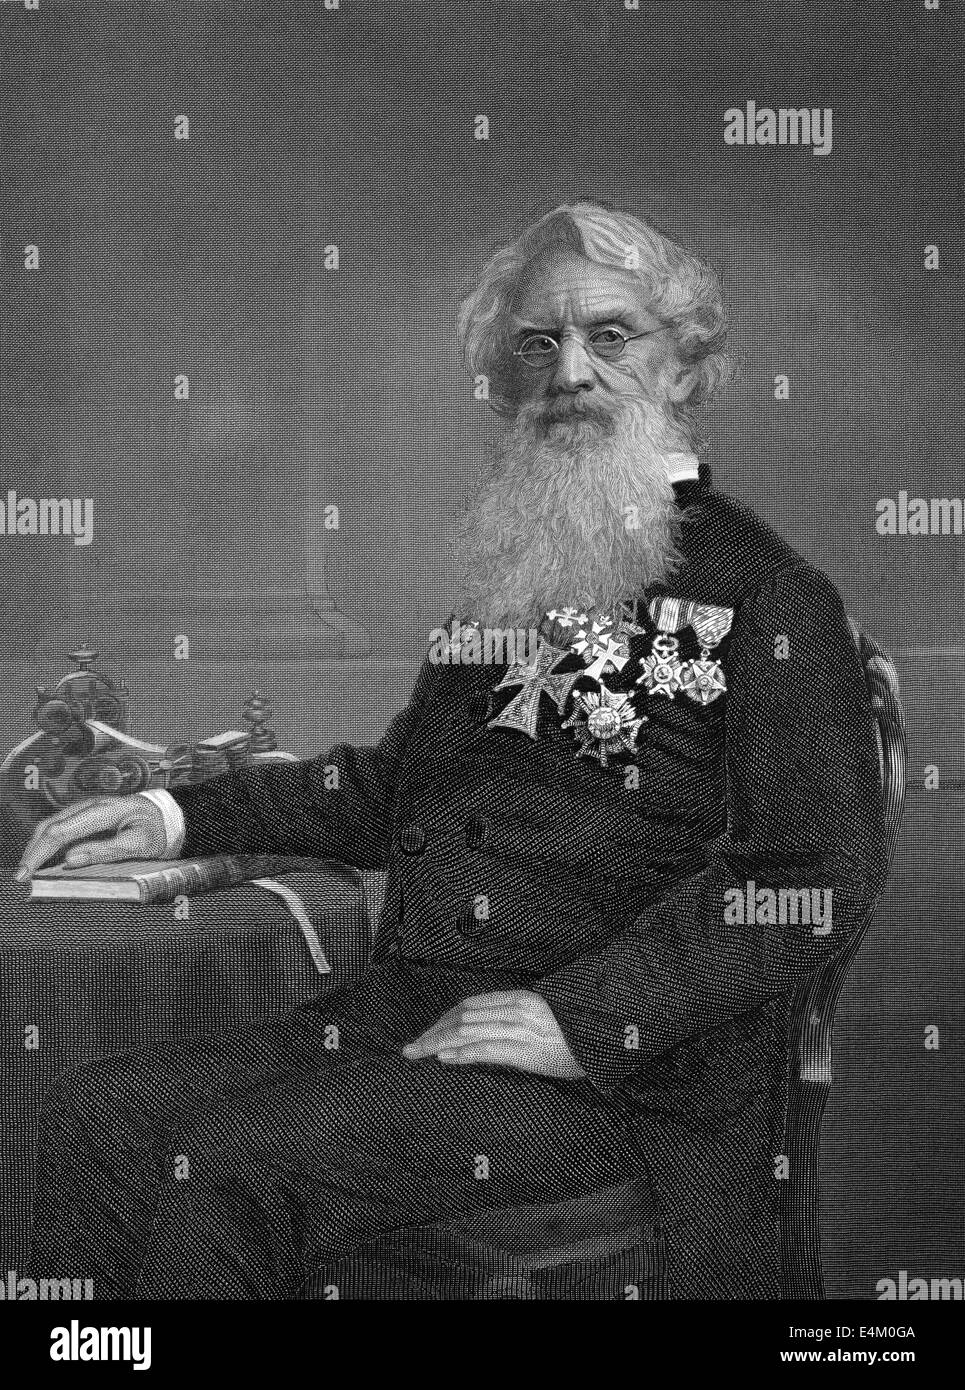 Samuel Finley Breese Morse, 1791 - 1872, an American painter and inventor, - Stock Image